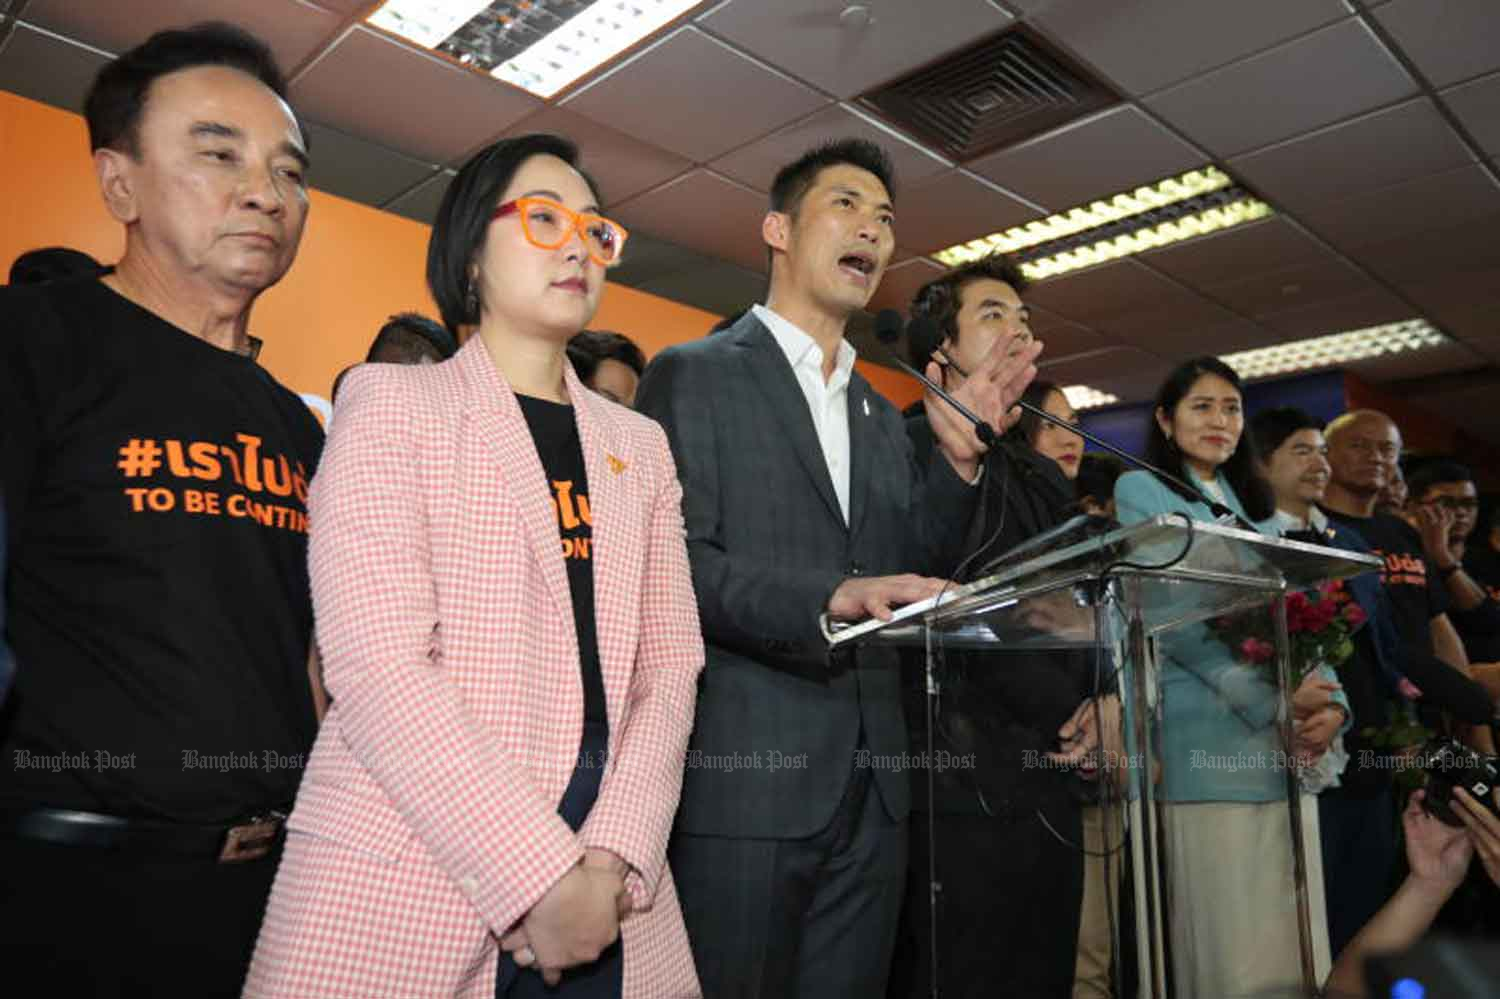 Thanathorn Juangroongruangkit, third from left, leader of the disbanded Future Forward Party, addresses supporters on Feb 21 following the Constitutional Court's ruling which dissolved the party over a 191 million baht loan it accepted from him. (Photo: Chanat Katanyu)